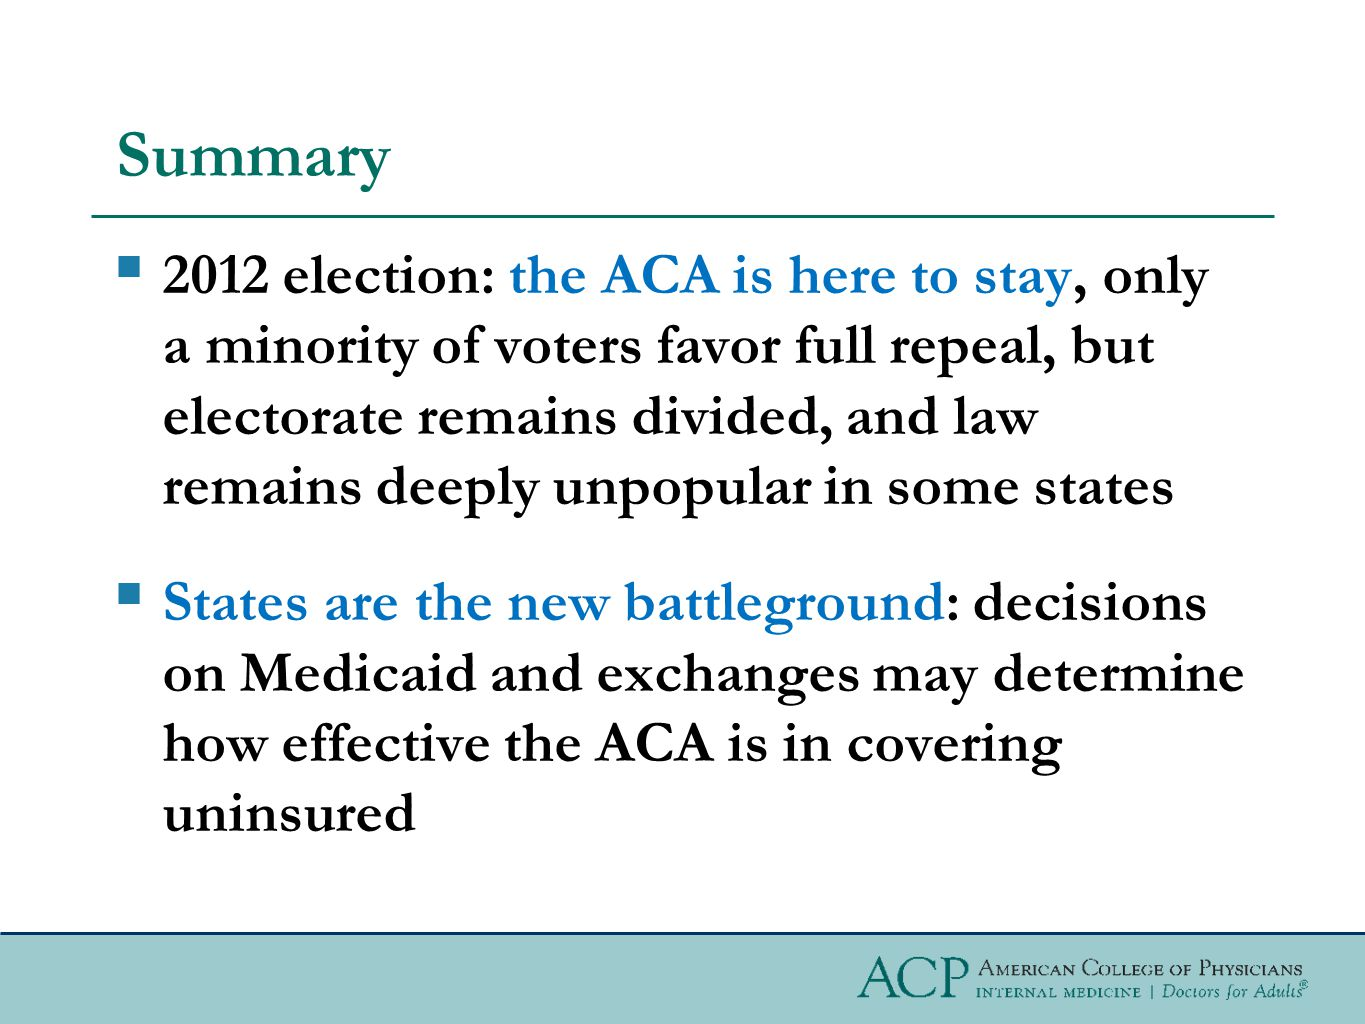 Summary  2012 election: the ACA is here to stay, only a minority of voters favor full repeal, but electorate remains divided, and law remains deeply unpopular in some states  States are the new battleground: decisions on Medicaid and exchanges may determine how effective the ACA is in covering uninsured